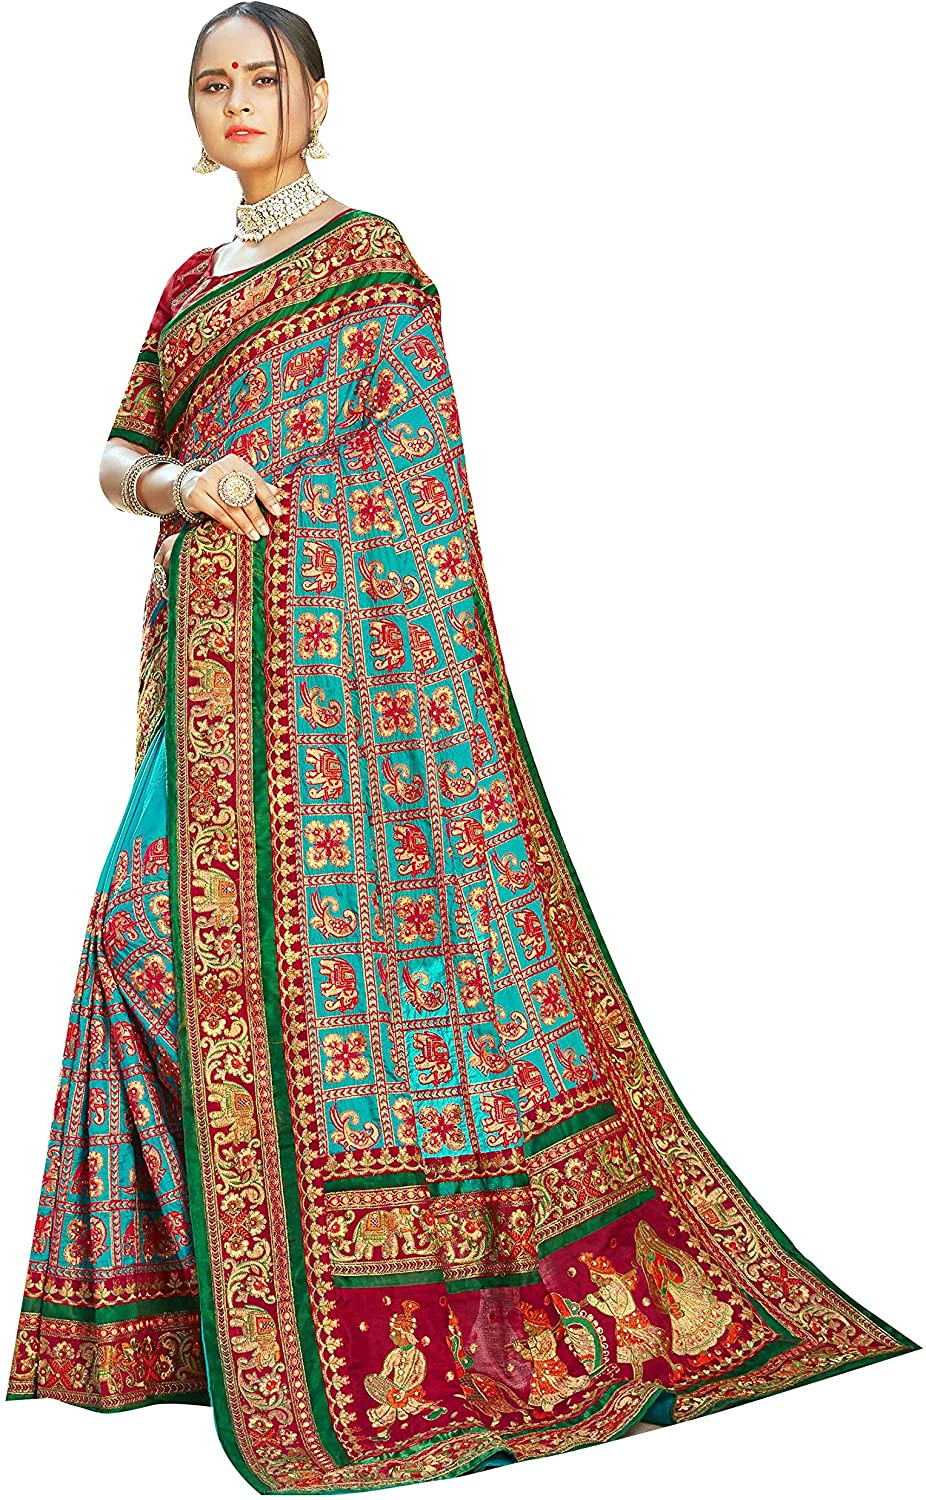 Sarees for Women Satin Silk Heavy Embroidered Saree ||Ethnic Traditional Indian Wedding Gift Sari with Unstitched Blouse